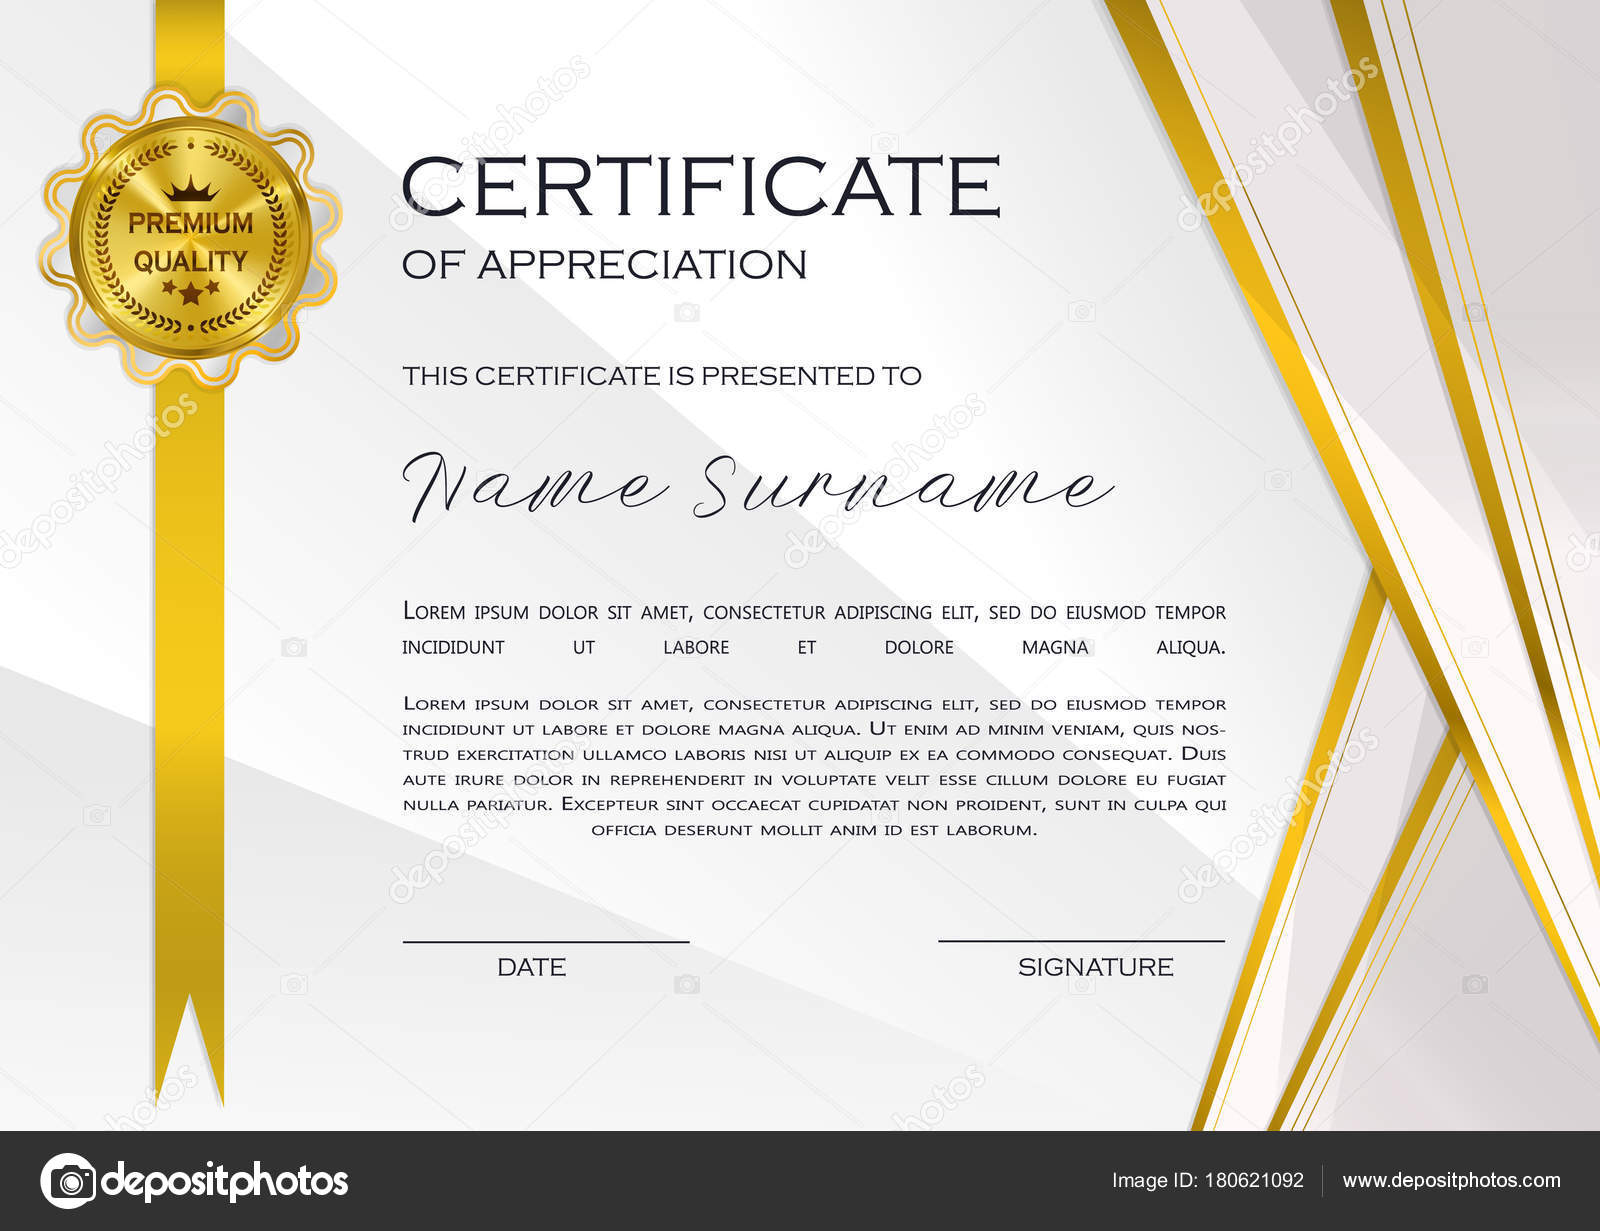 Qualification certificate appreciation design elegant luxury modern qualification certificate appreciation design elegant luxury modern pattern best quality stock vector yadclub Gallery